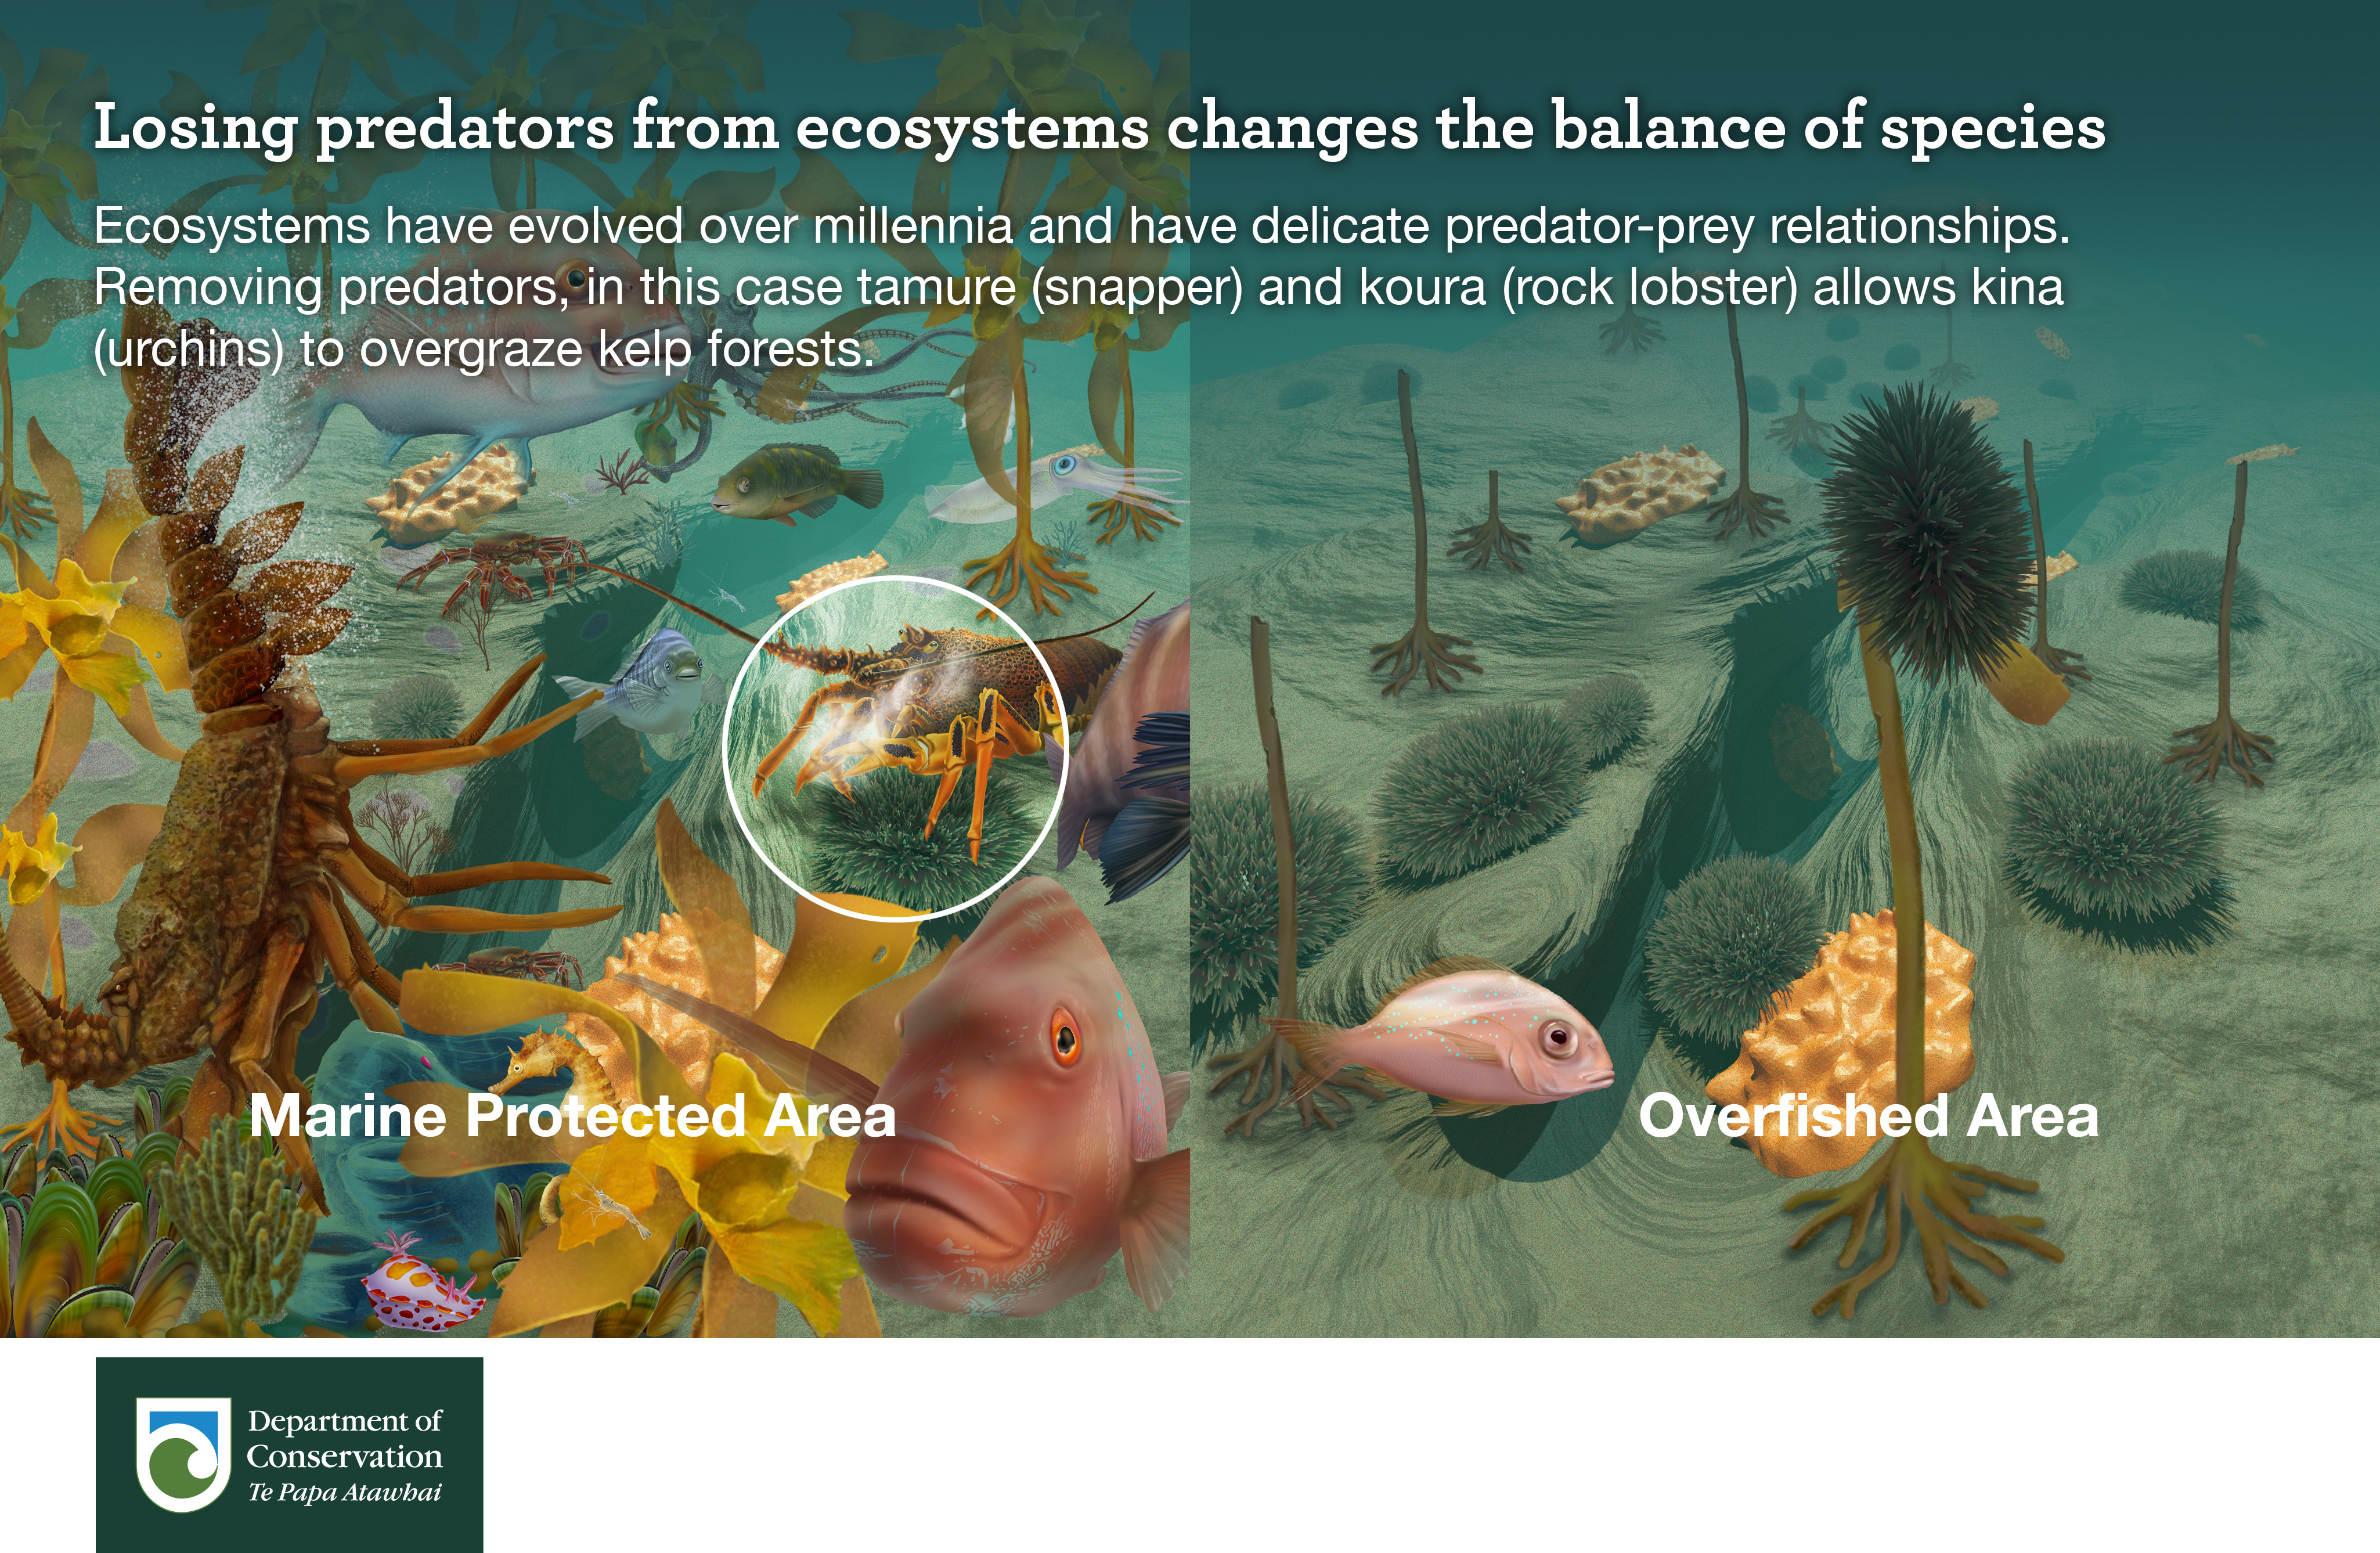 Loosing predators from ecosystems changes the balance of species